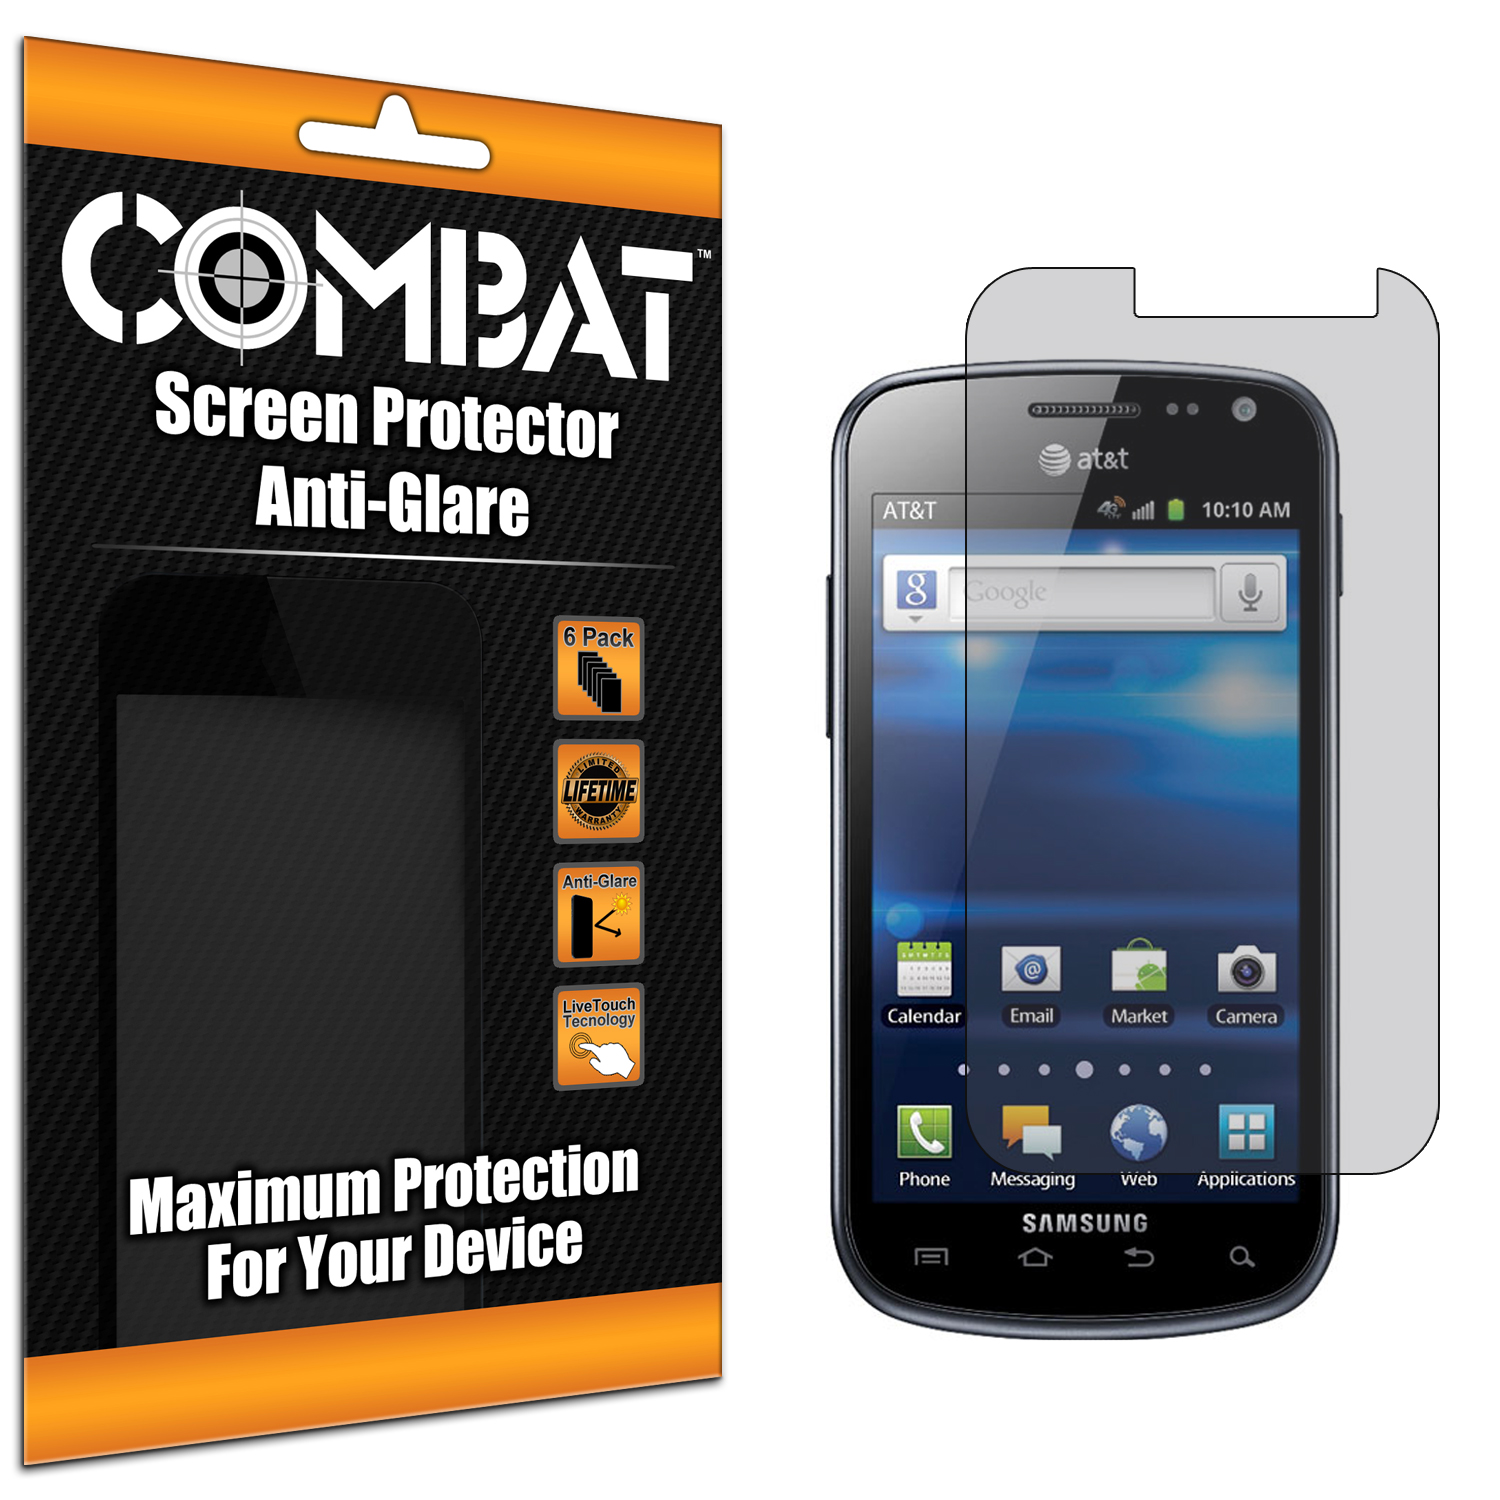 Pantech Burst P9070 Combat 6 Pack Anti-Glare Matte Screen Protector